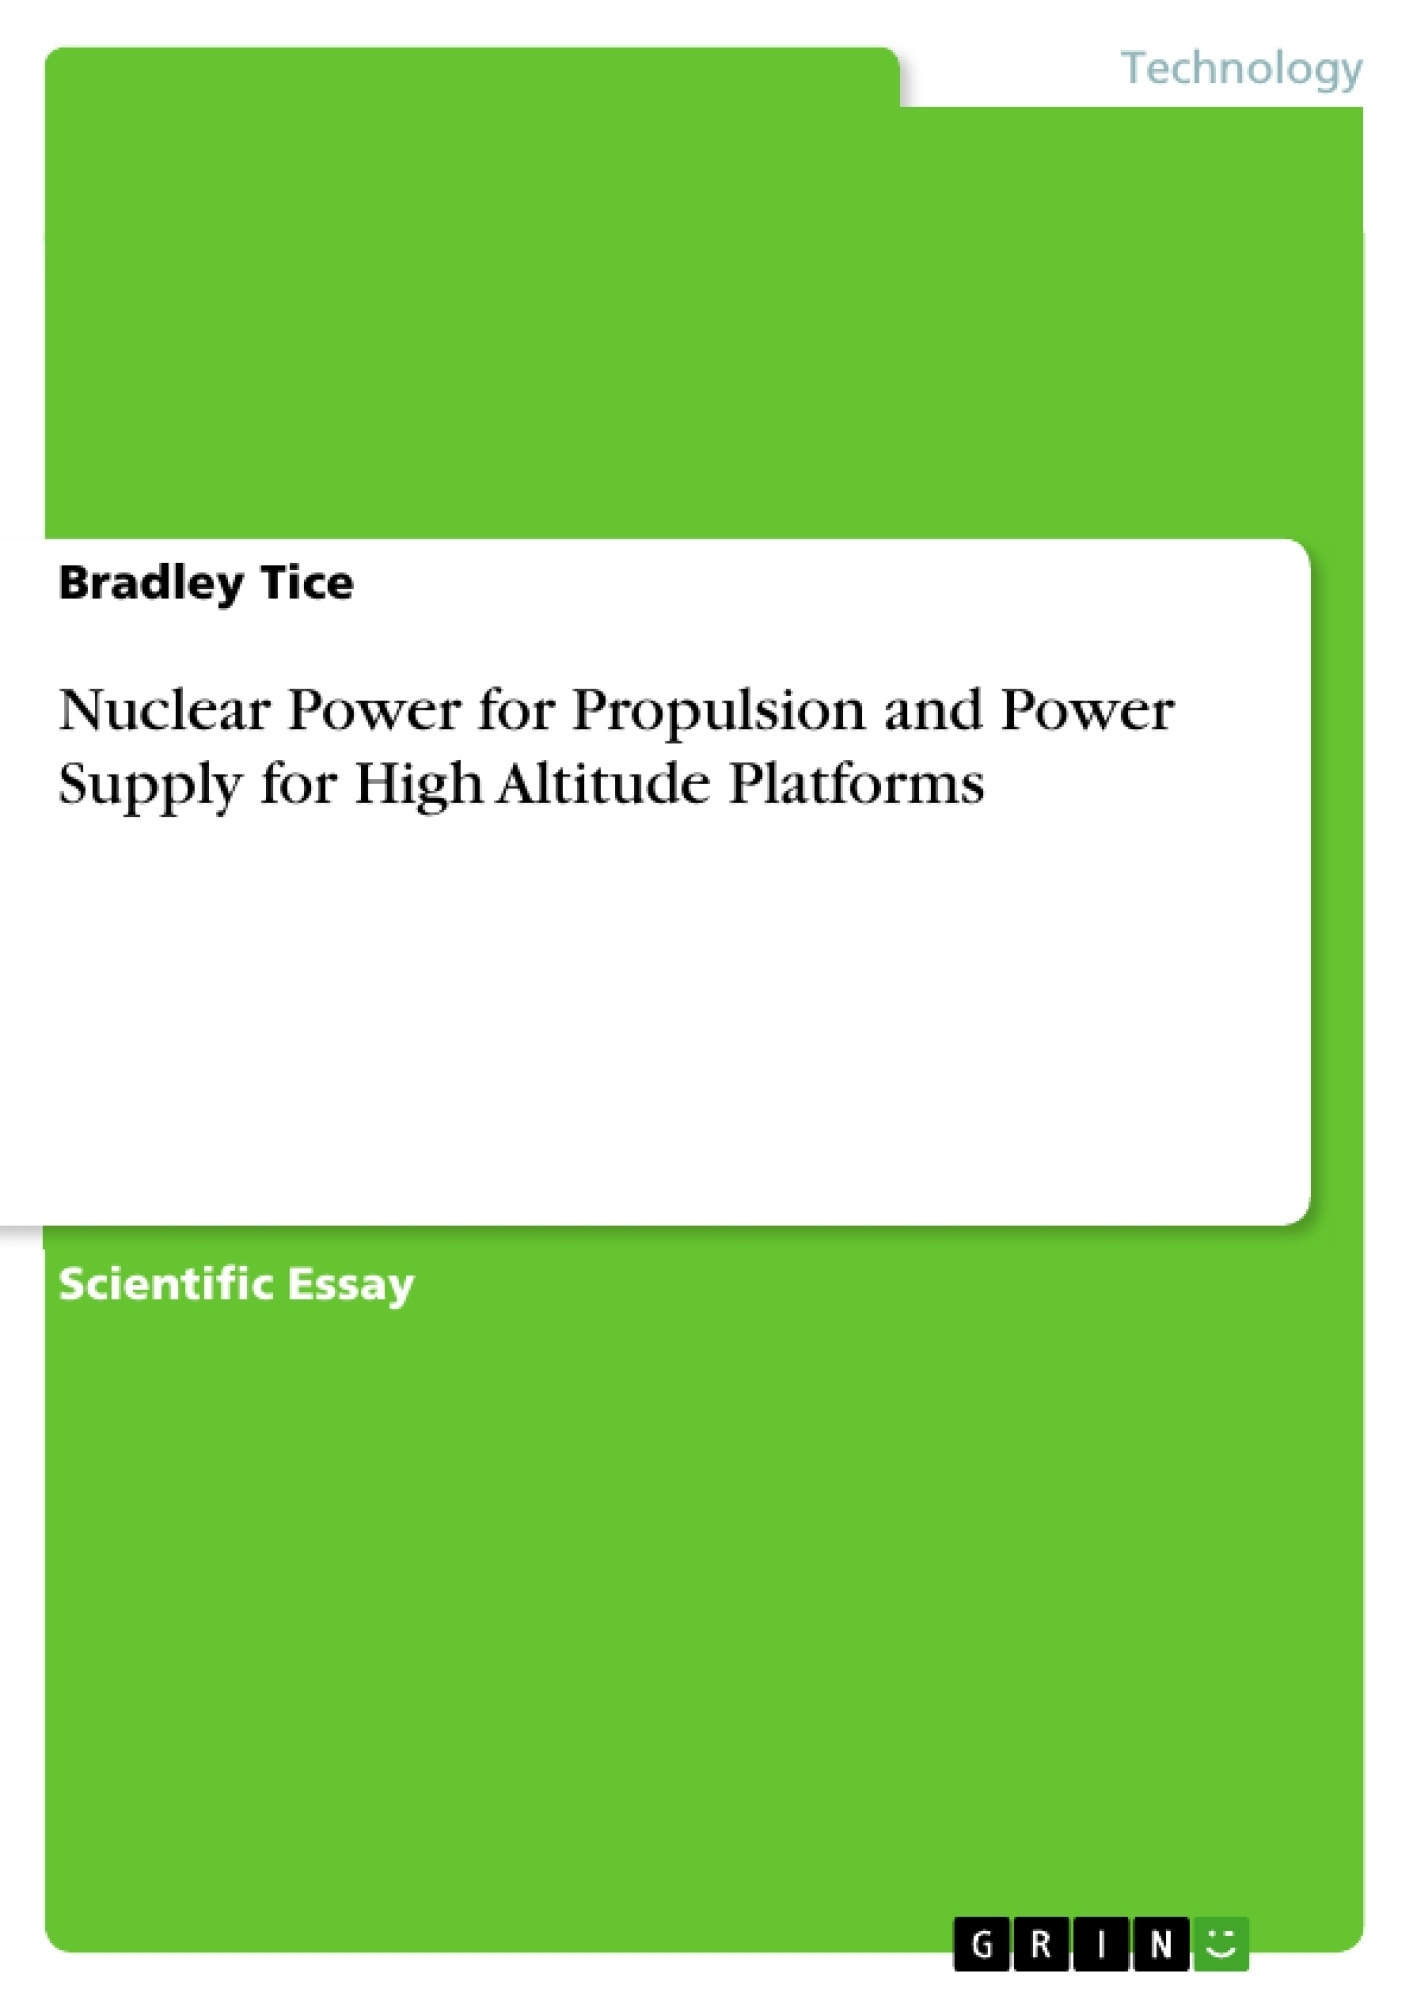 Title: Nuclear Power for Propulsion and Power Supply for High Altitude Platforms